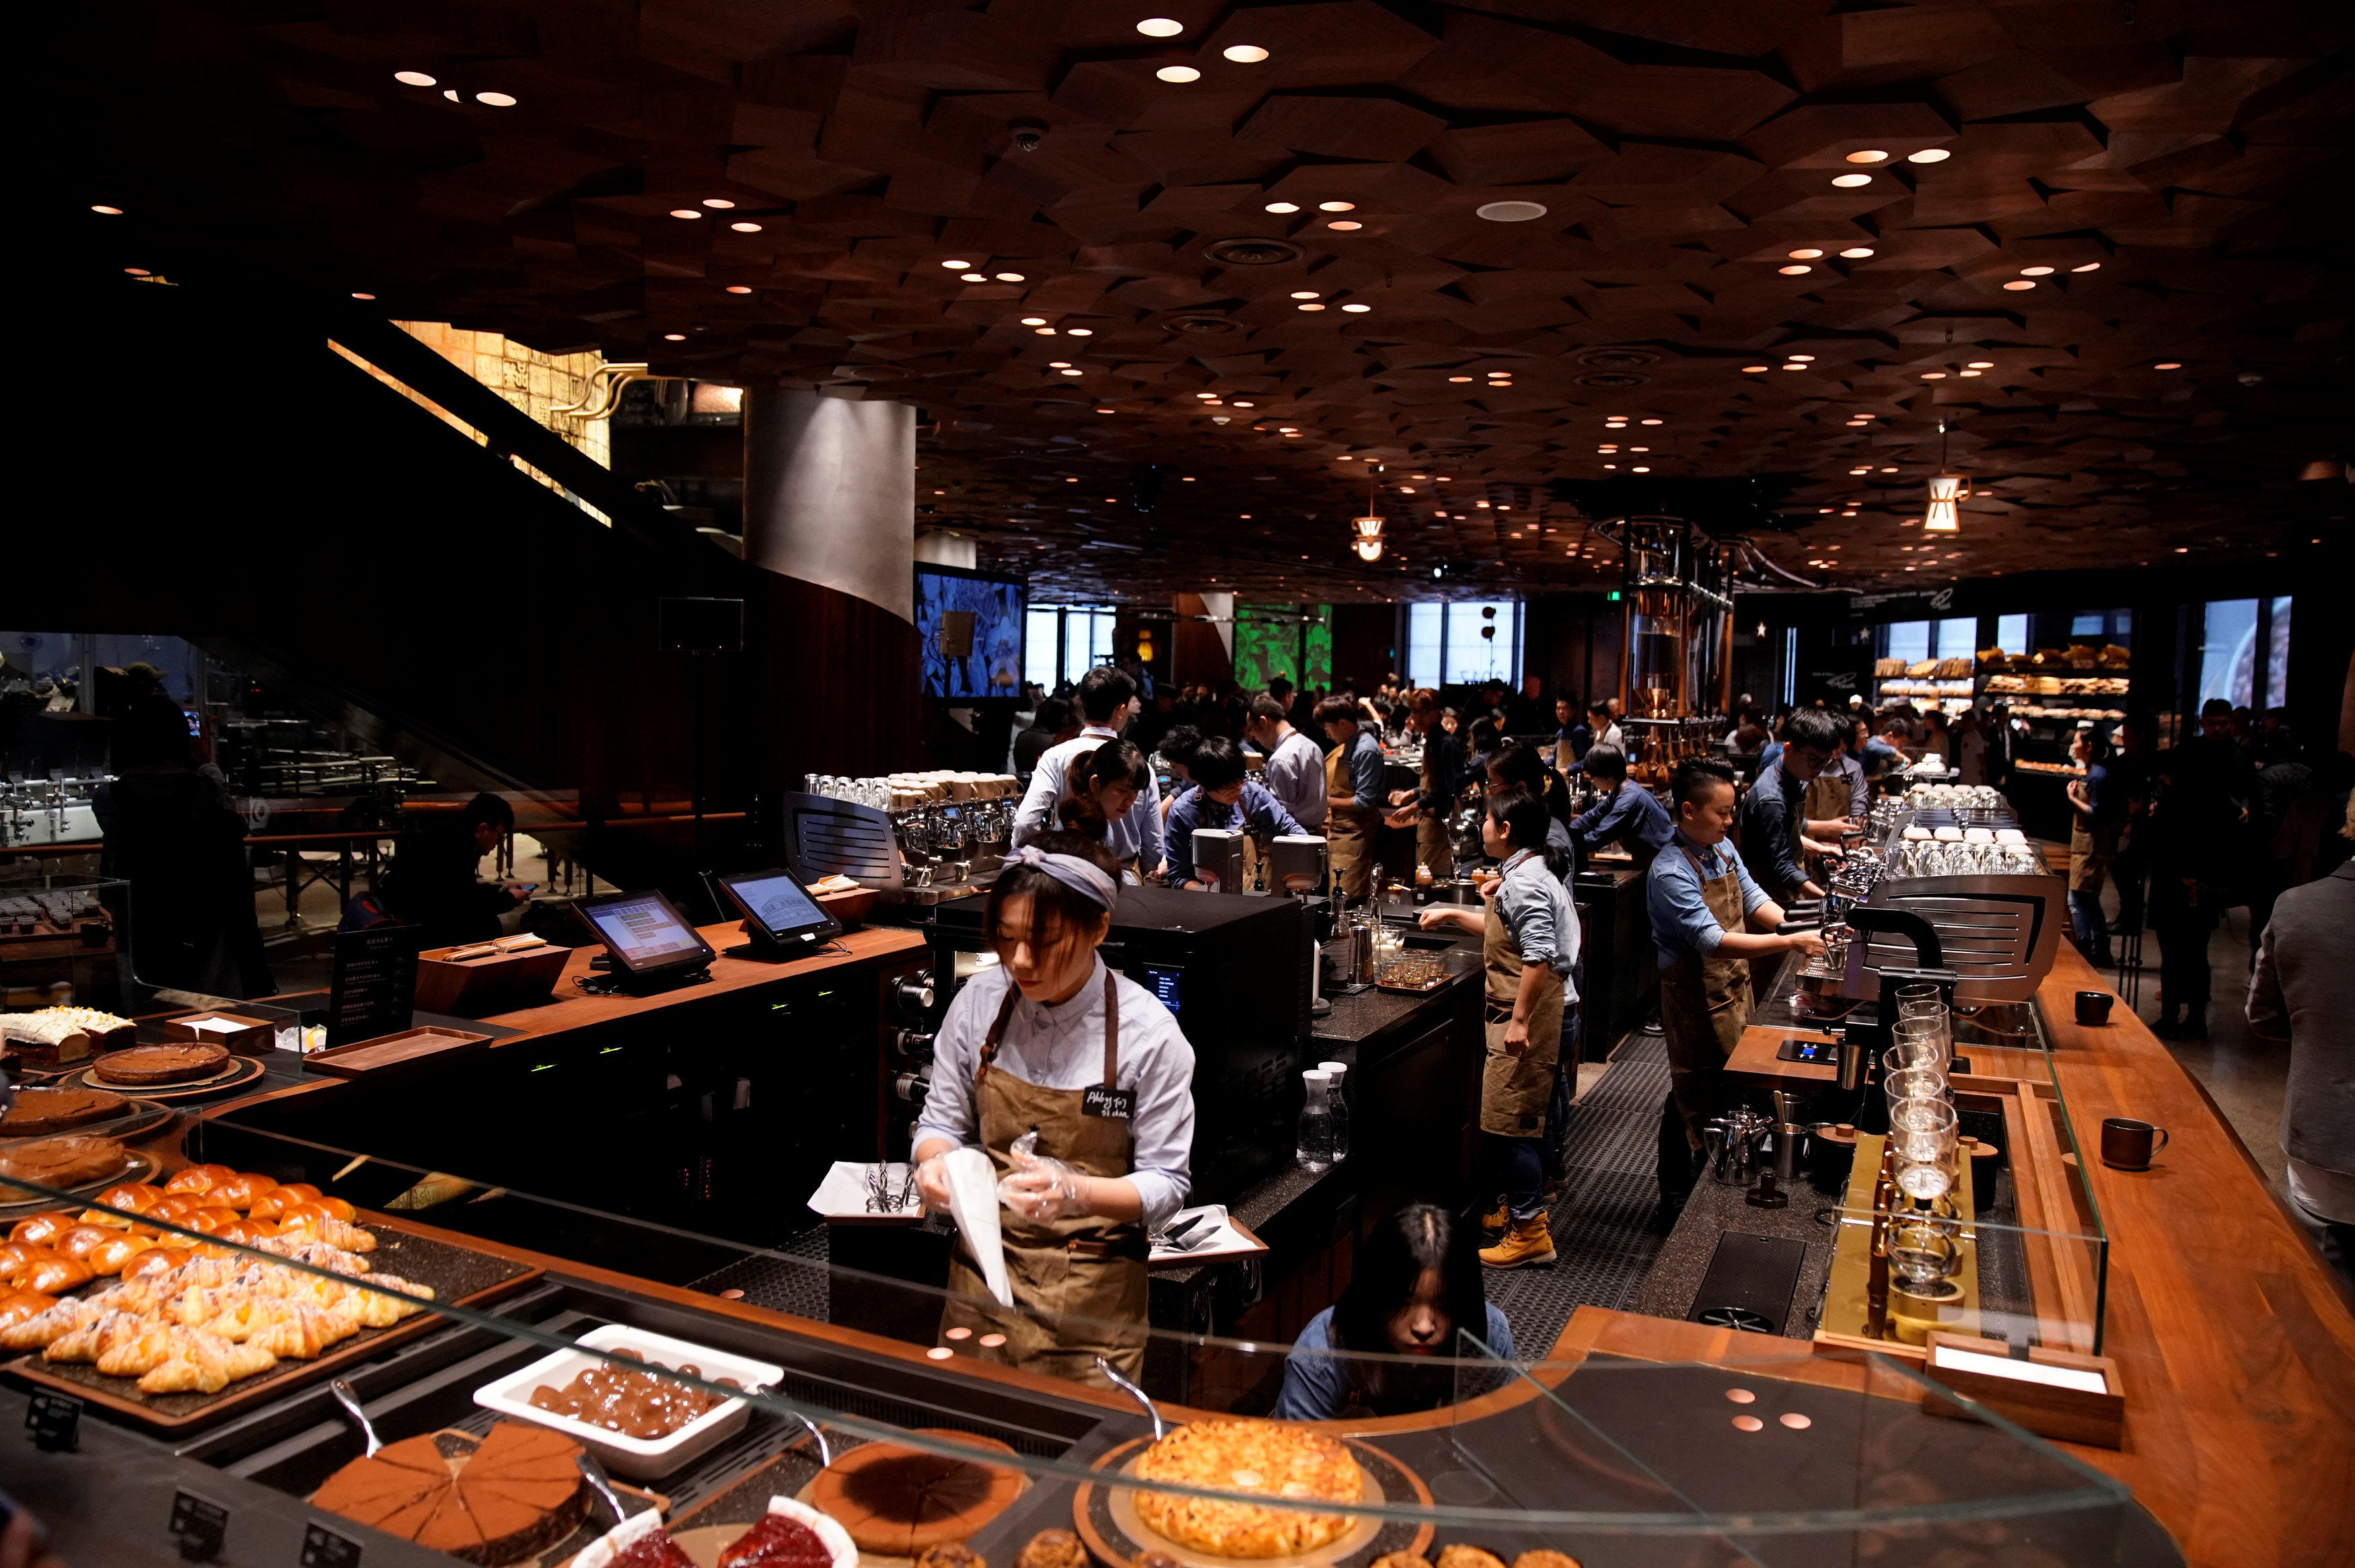 A view of the new Starbucks Reserve Roastery during a press conference in Shanghai, China, December 5, 2017